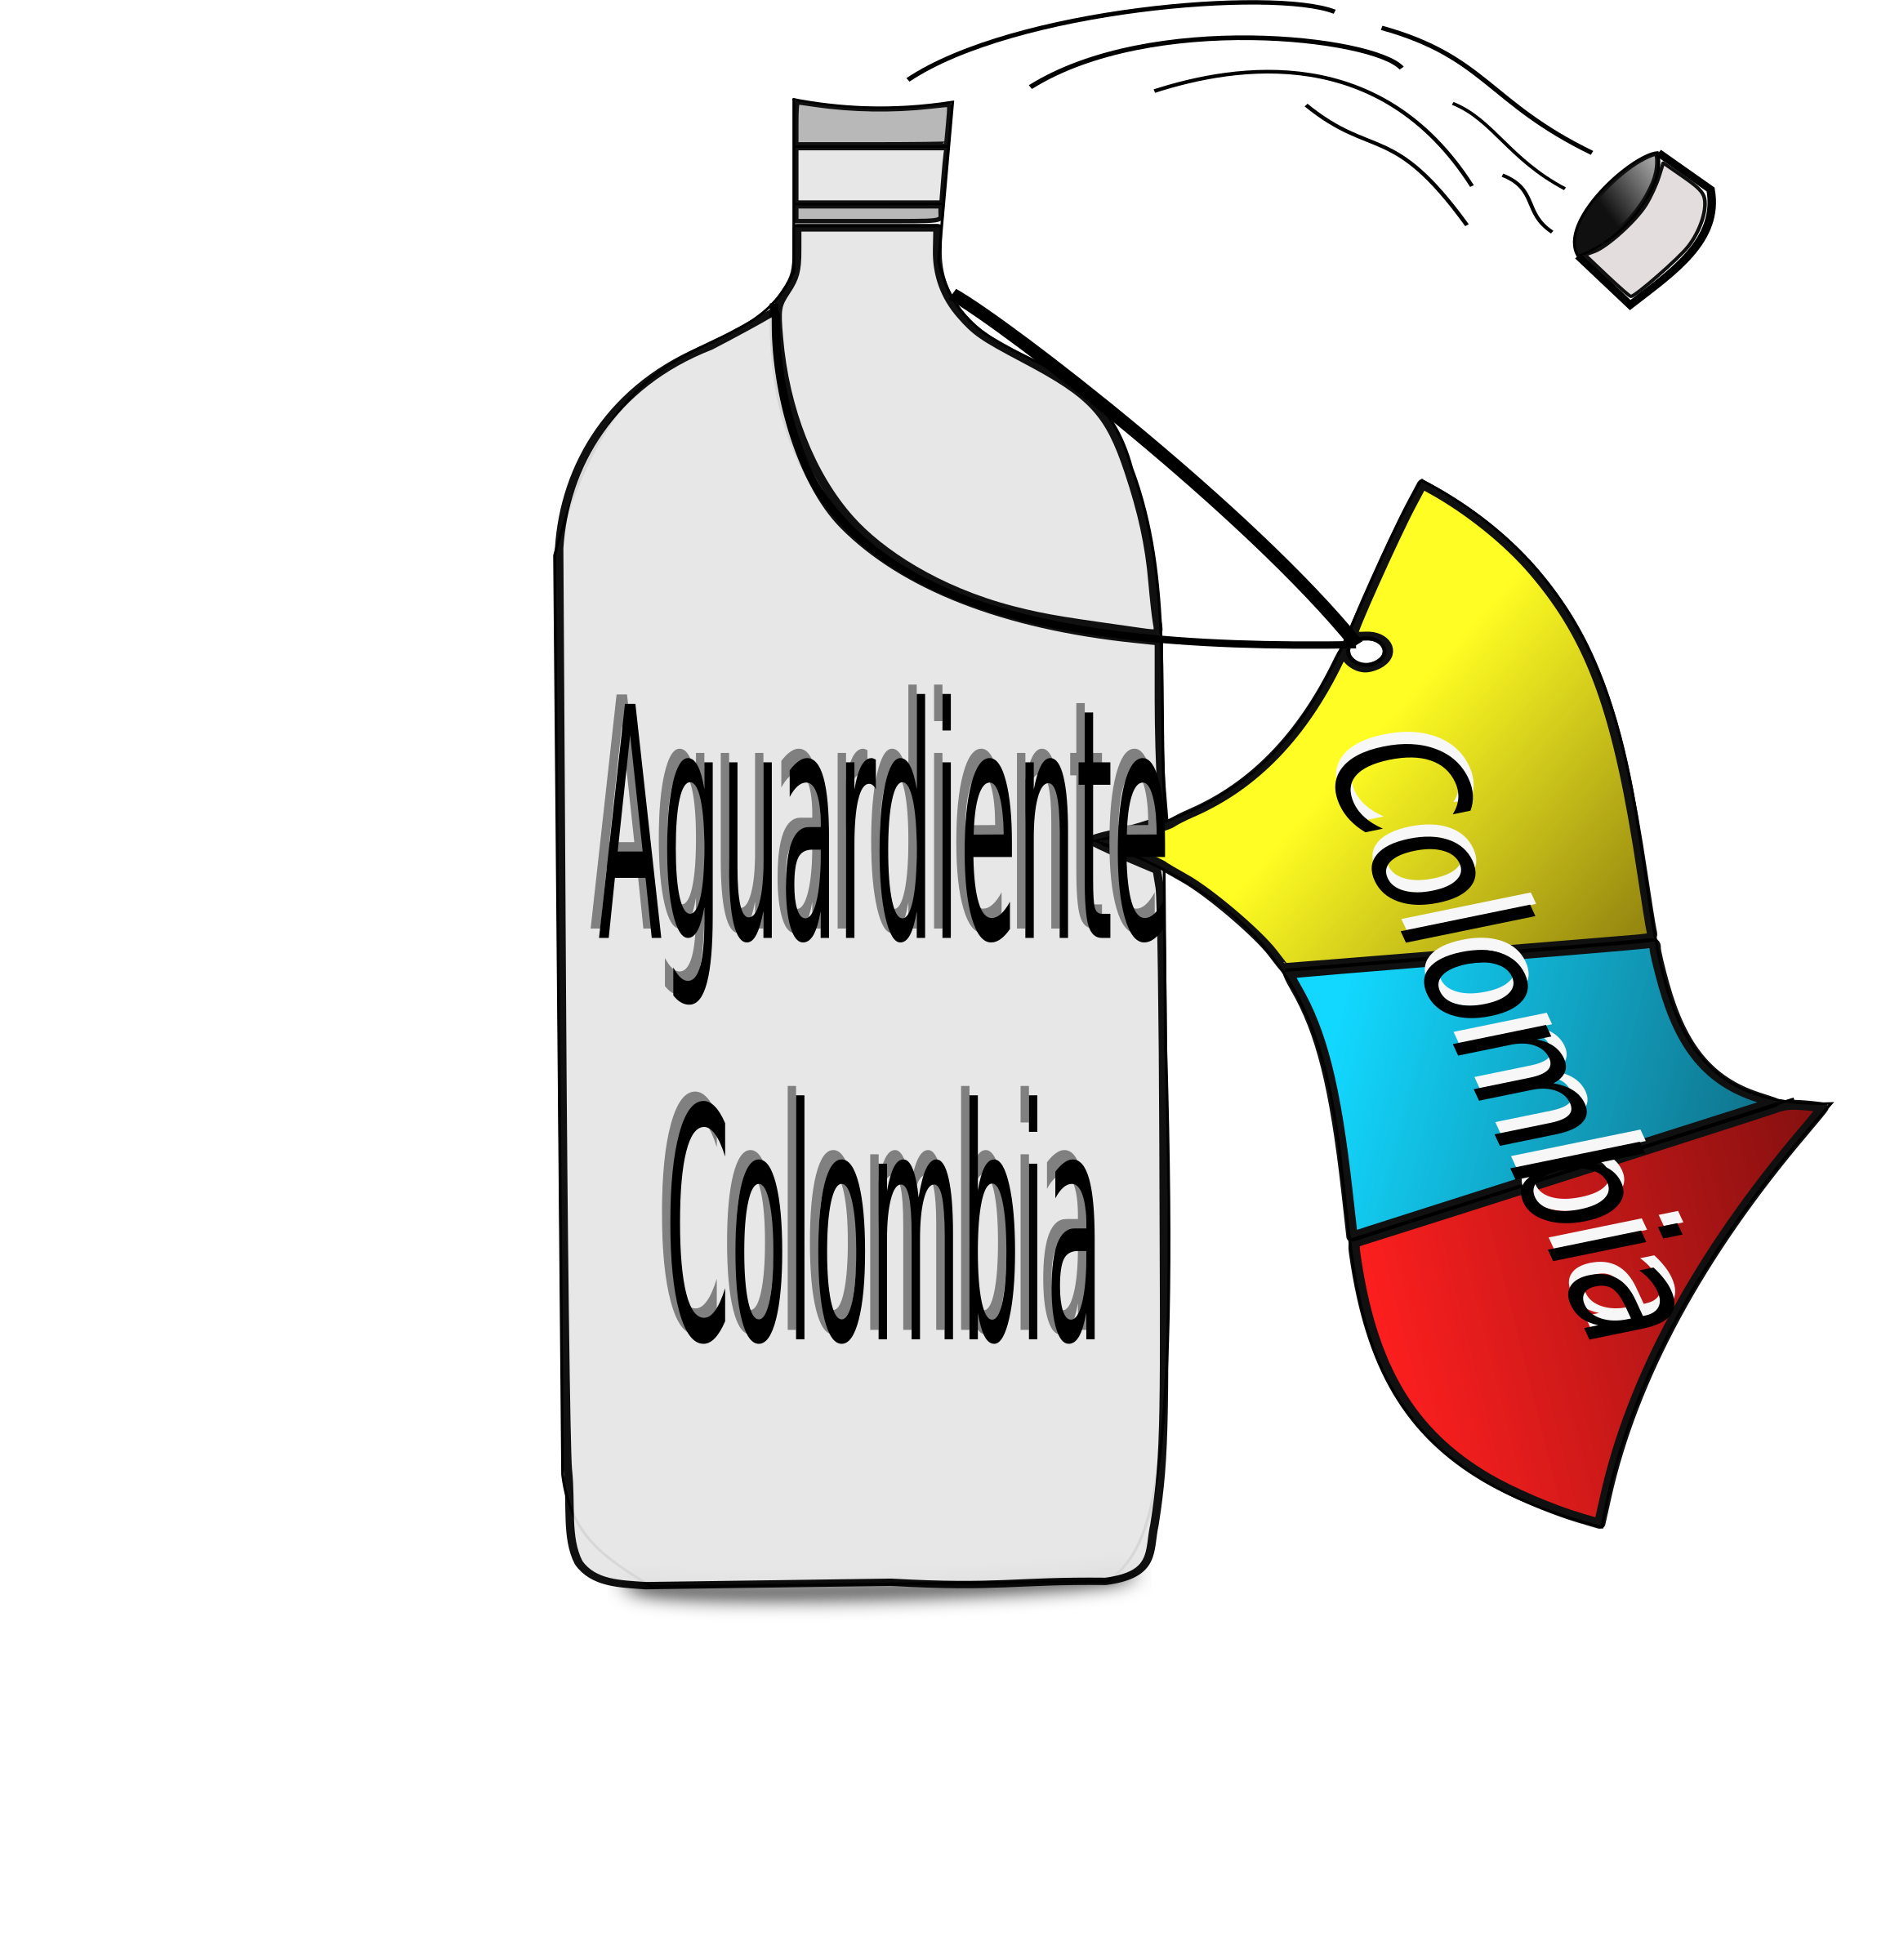 aguardiente colombia by Laura Cubillos